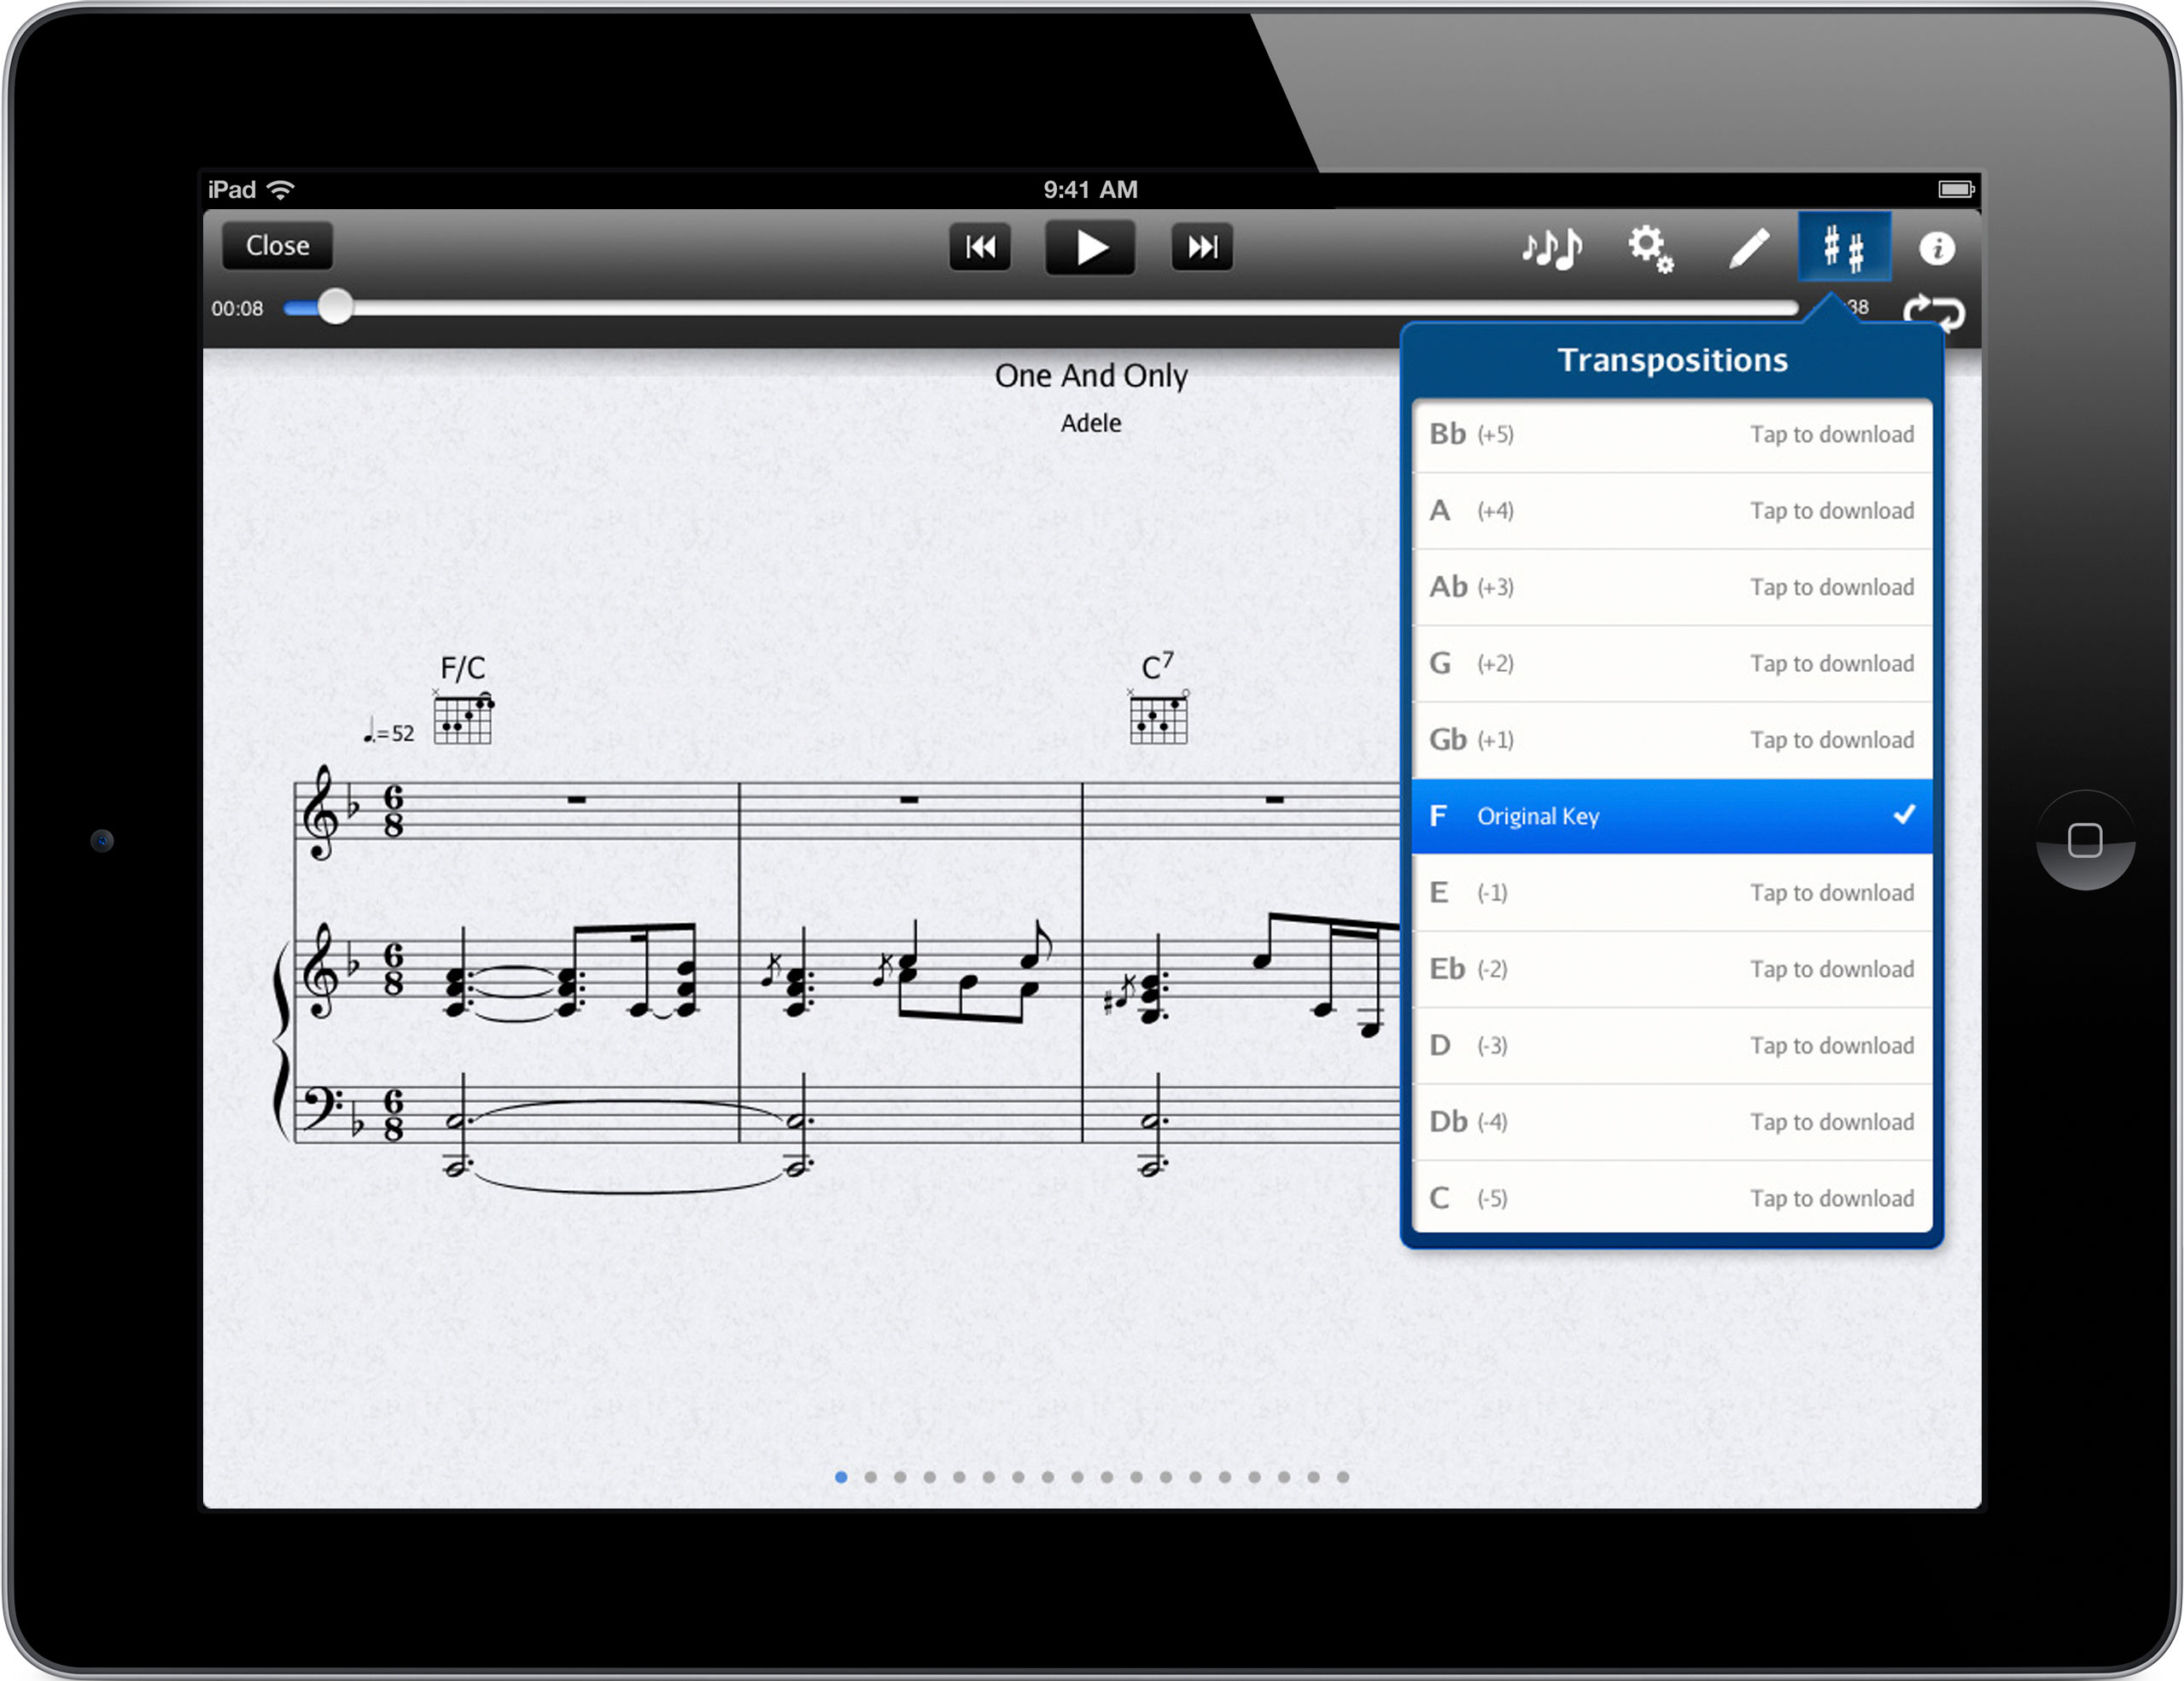 Transpose any song with the touch of a button